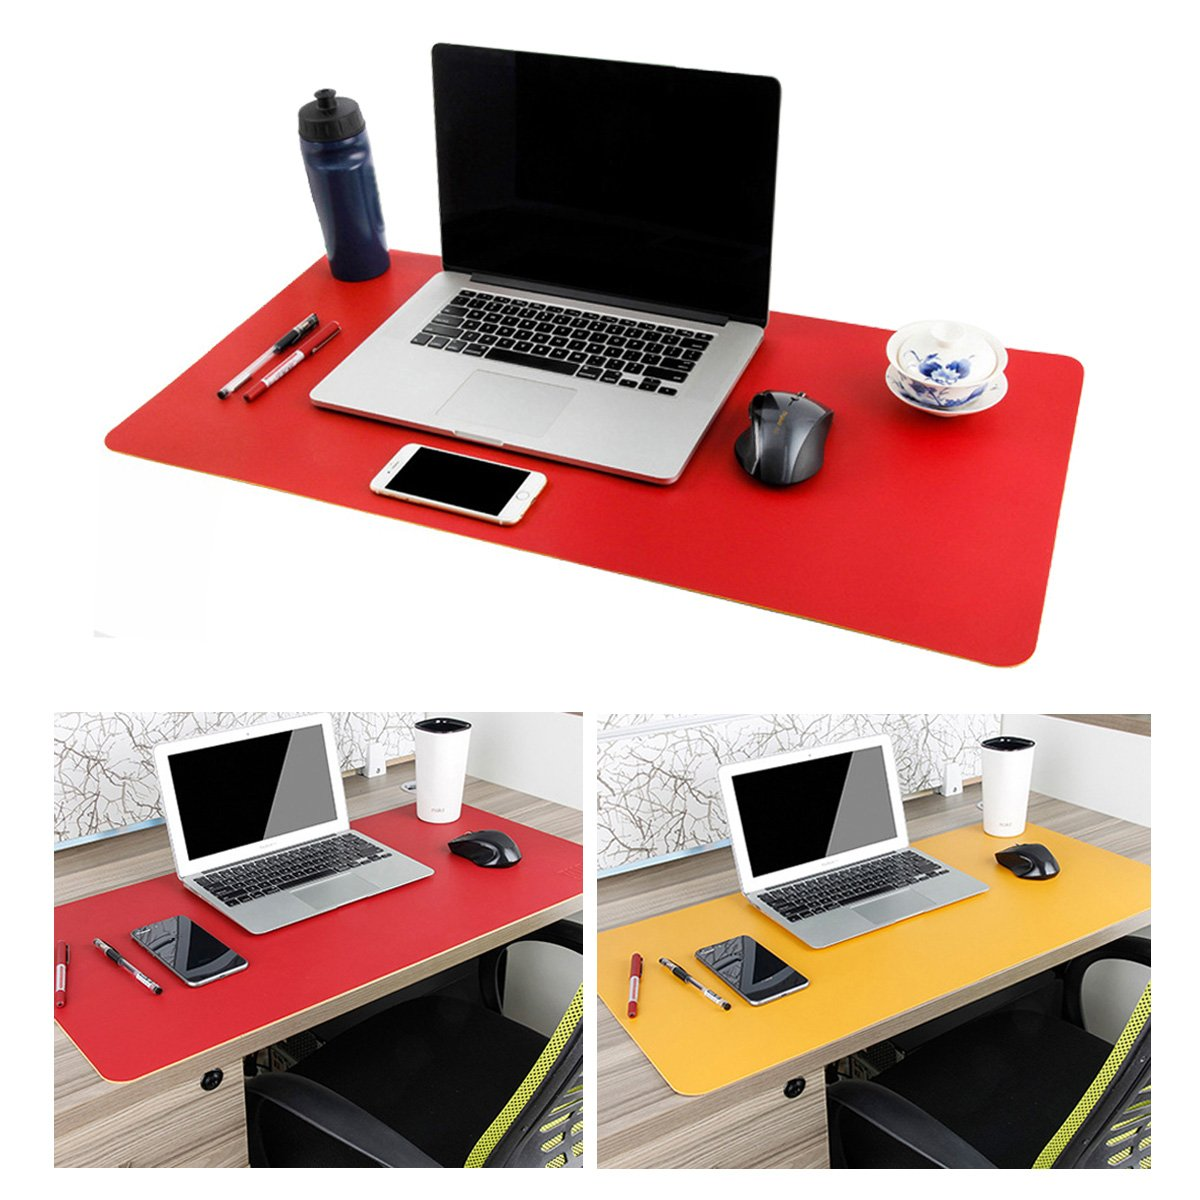 Leather Desk Mouse Pad, Desk Pad Protecter 31.5'' x 15.7'' Non-Slip Comfortable Desk Writing Mat Waterproof PU Leather Mat Dual Use Office Desk Mat (Red&Yellow)